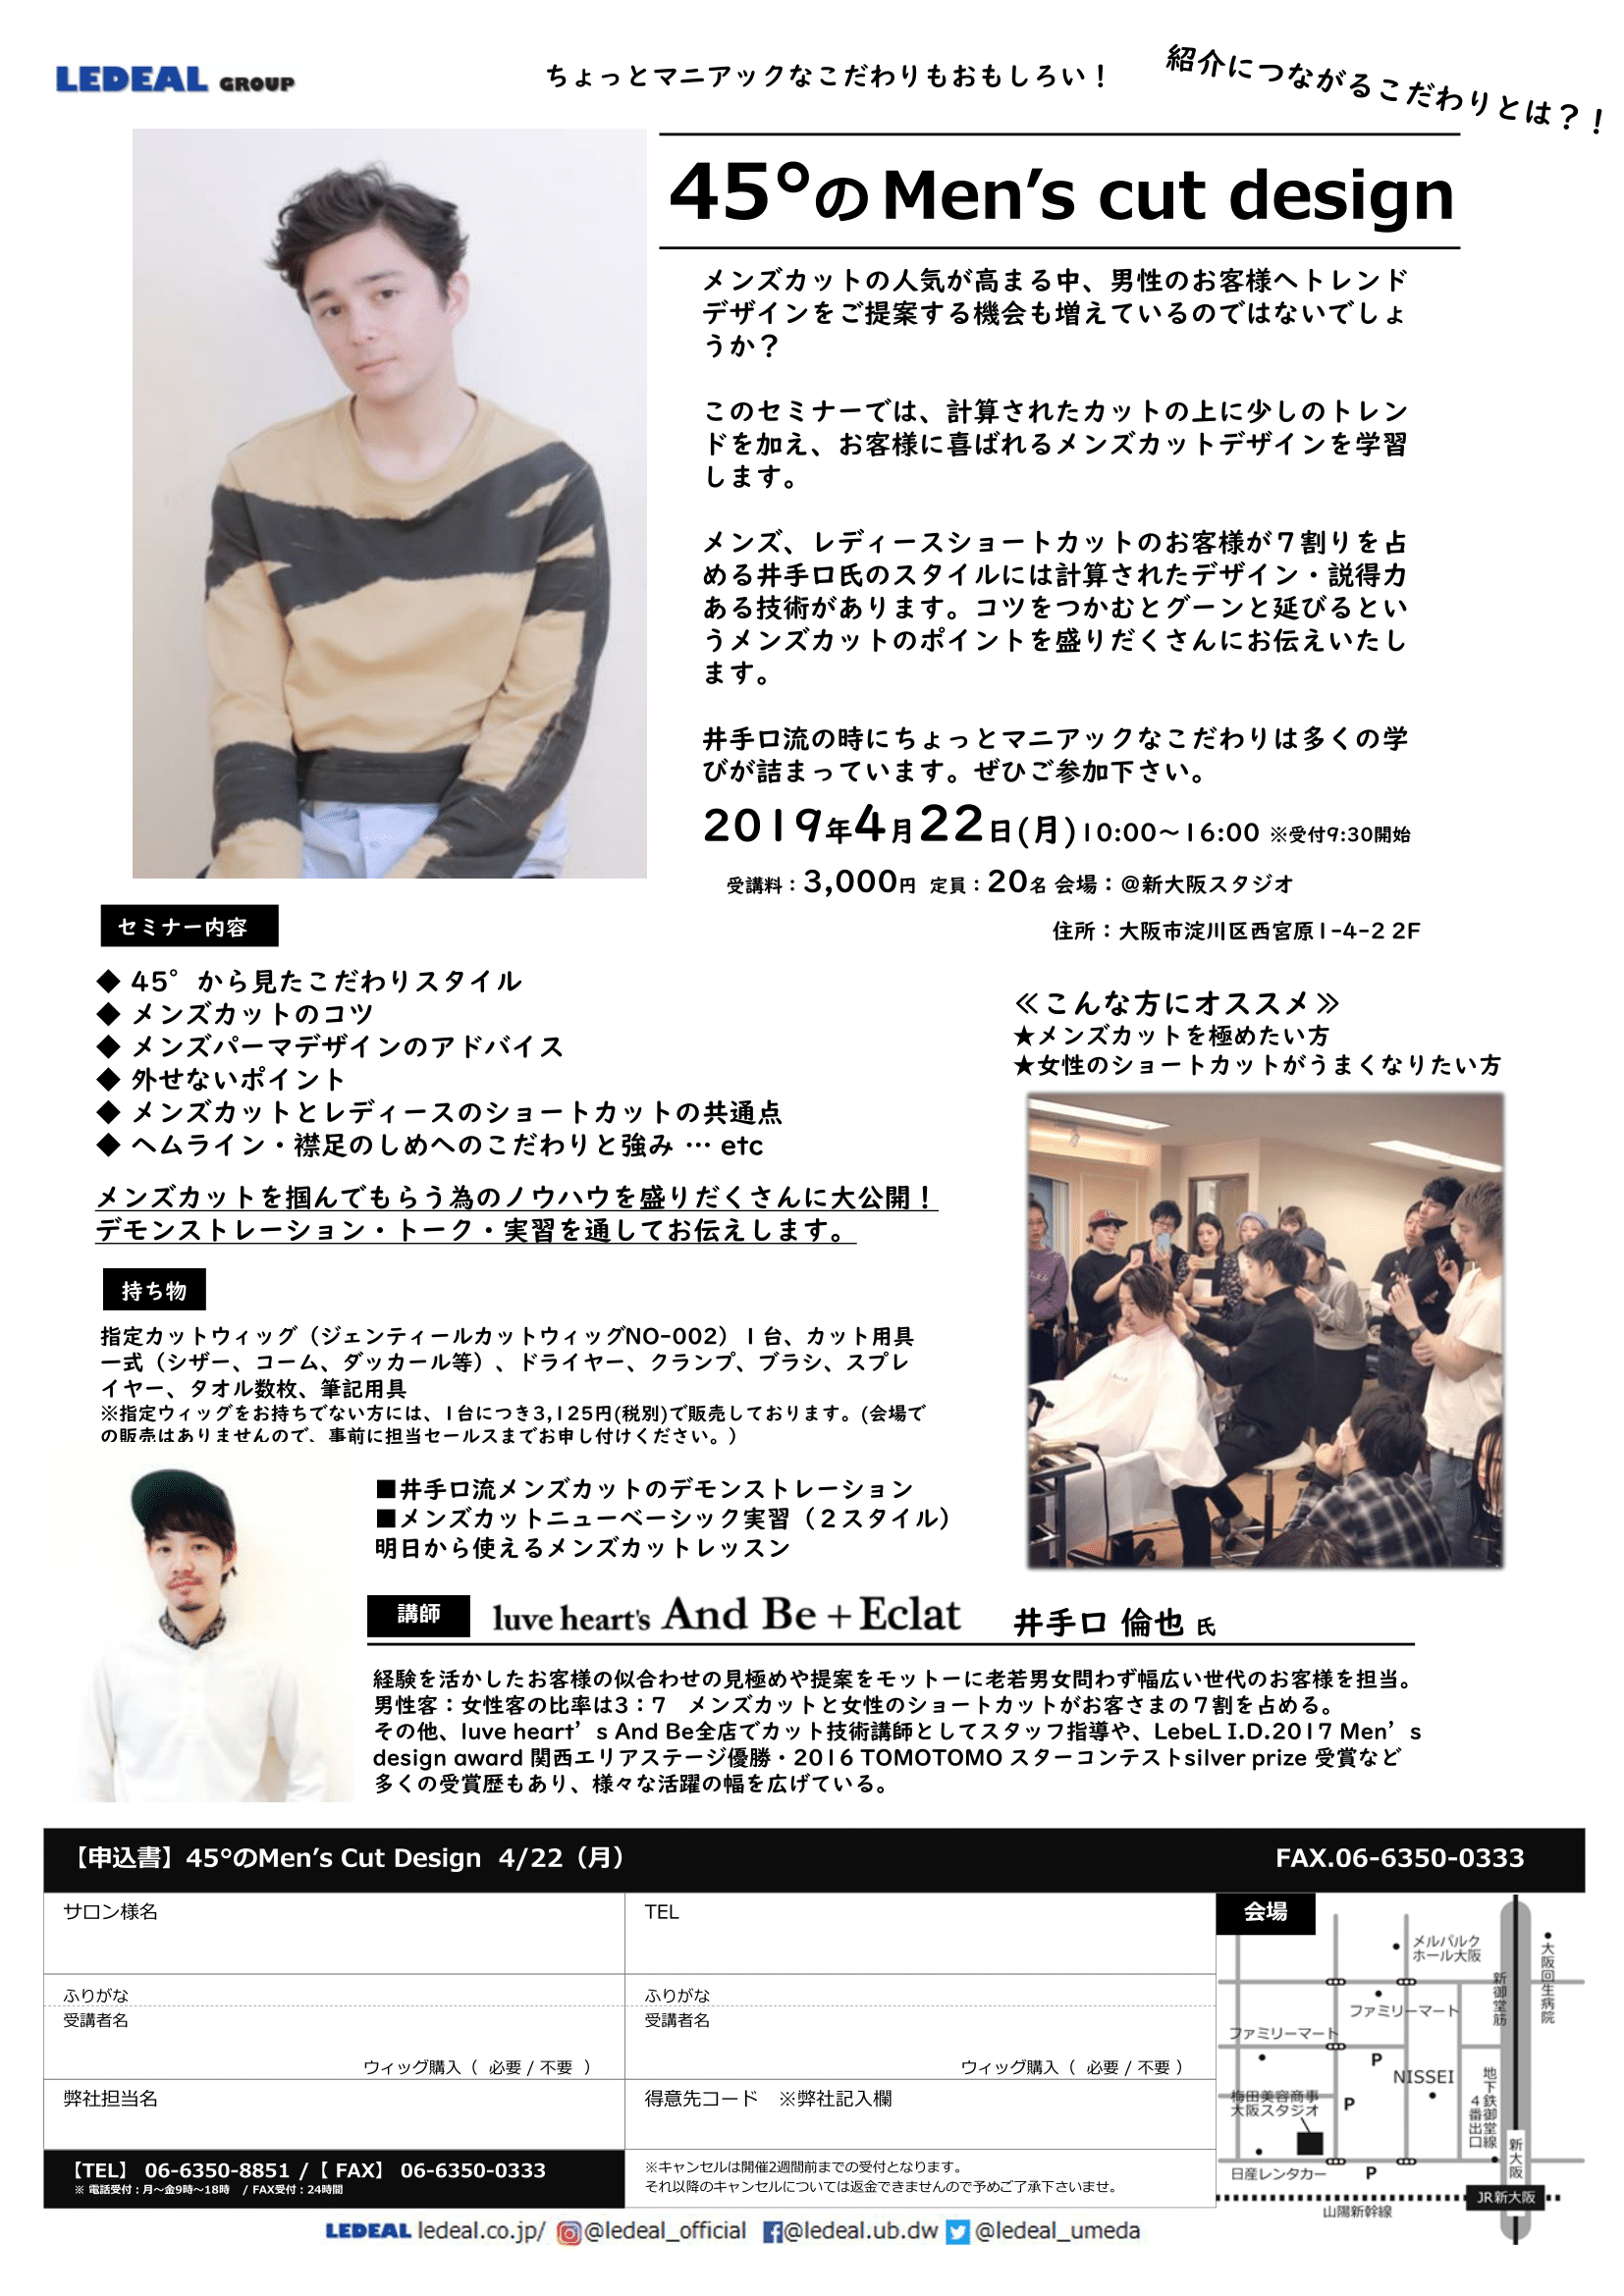 【大阪】MEN'S CUT DESIGN SEMINAR